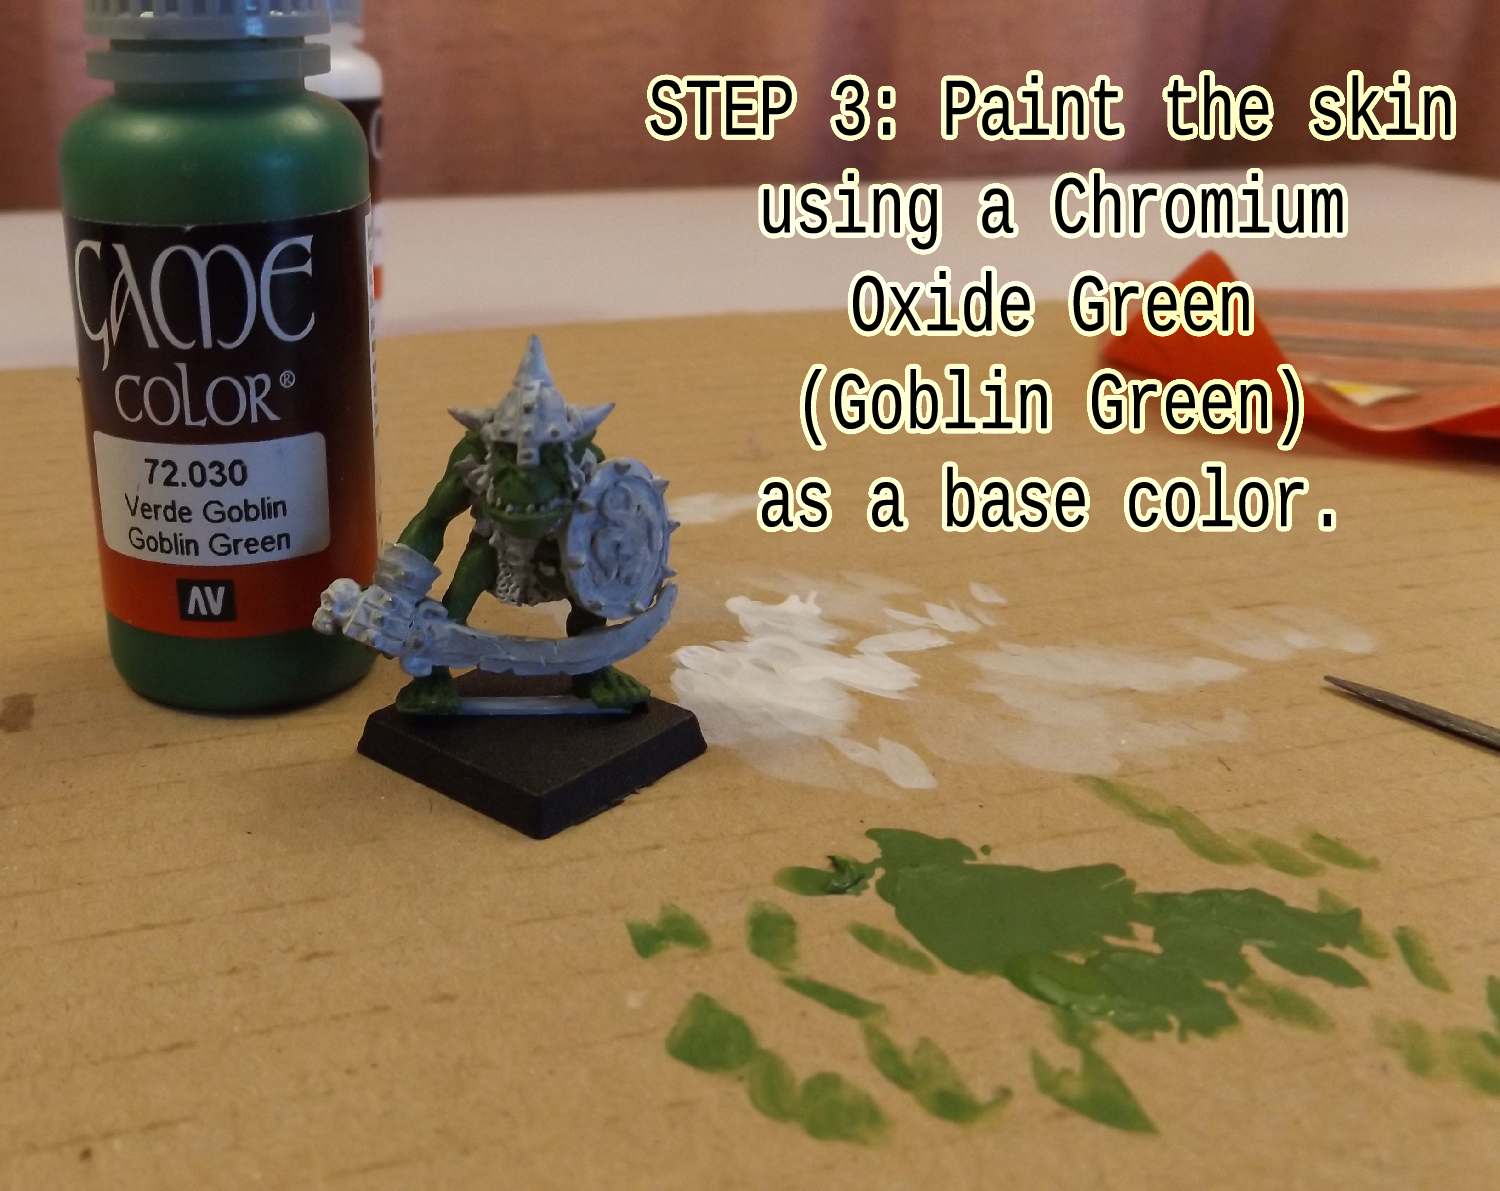 Paint the skin using Chromium Oxide Green (Goblin Green) to serve as a base colour.